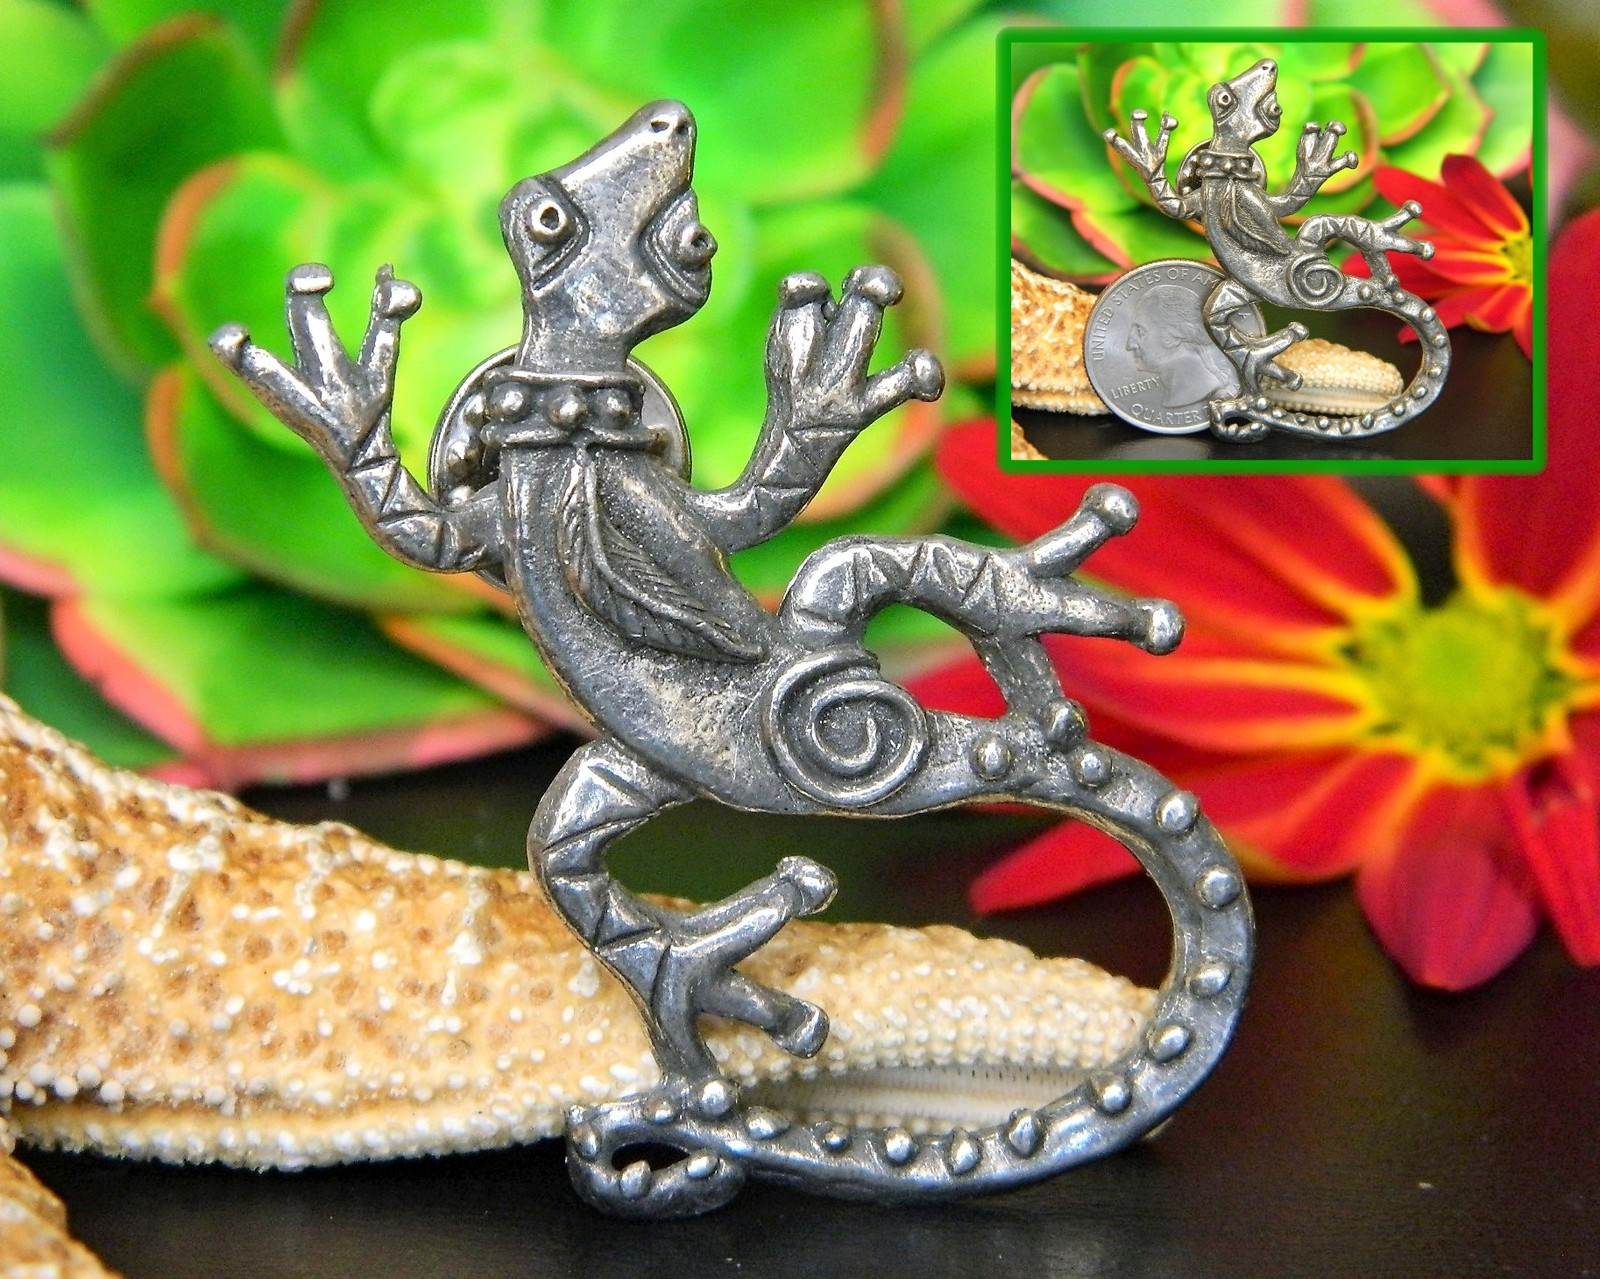 Lizard Gecko Tie Tack Lapel Pin Southwest Signed HF Pewter Figural